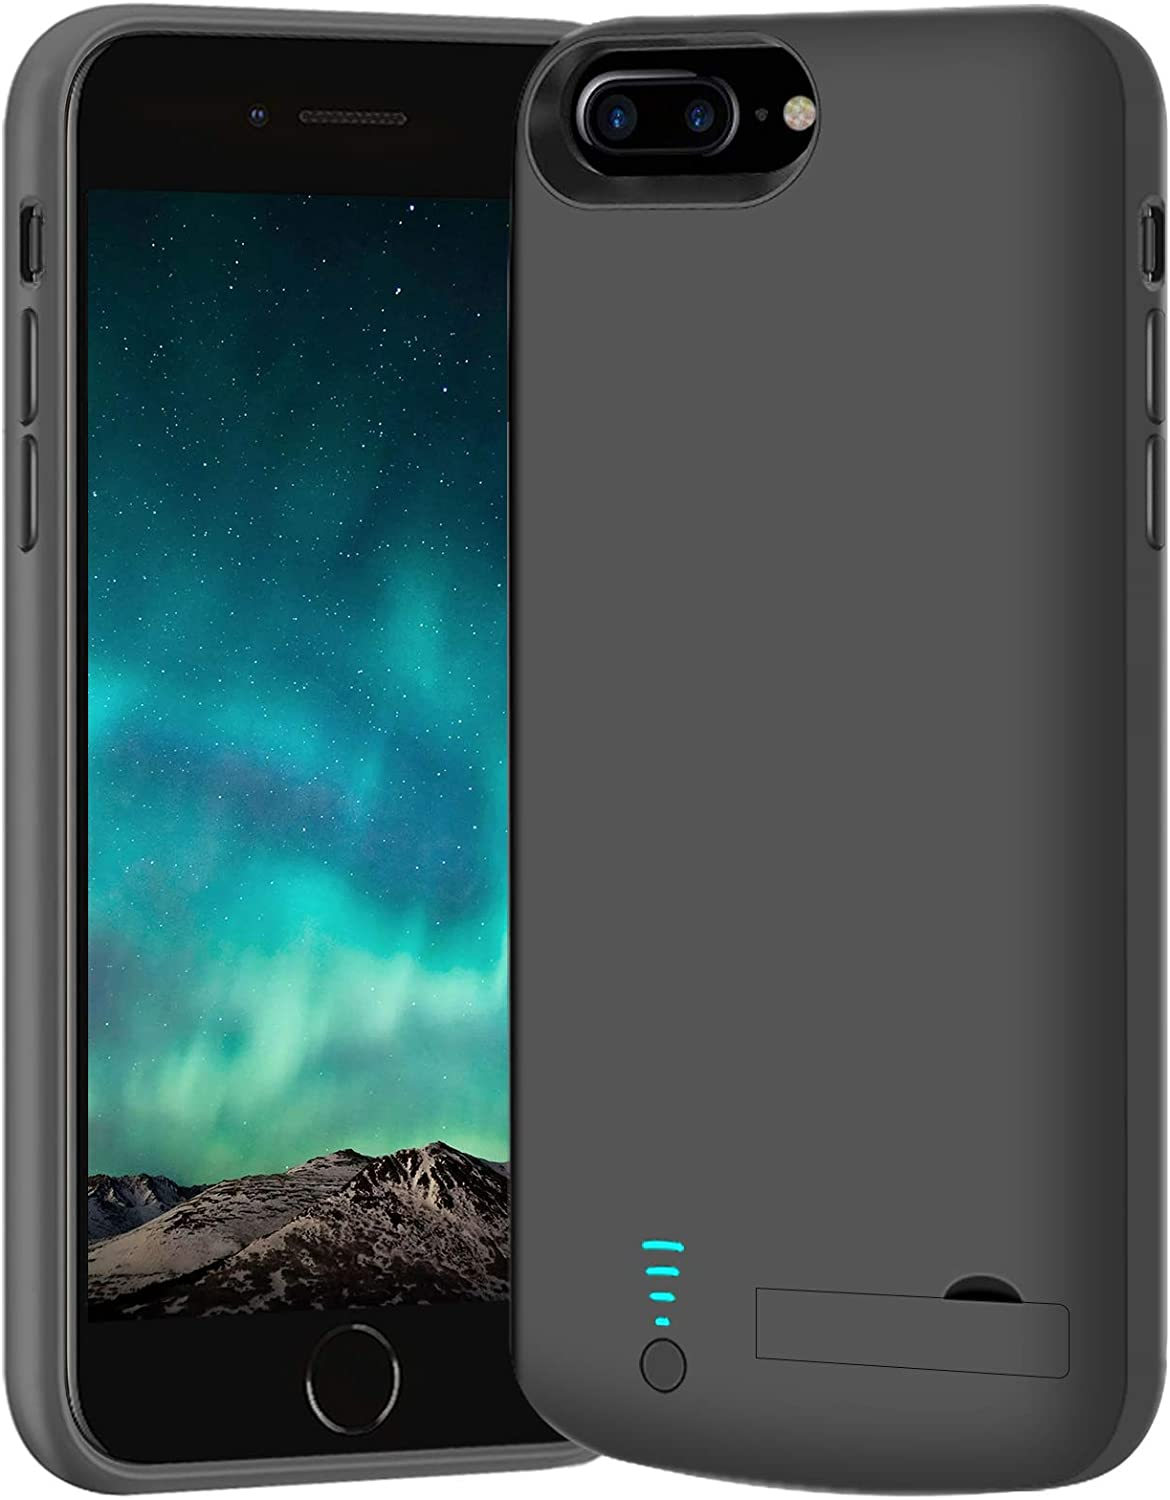 BAHOND Battery Case for iPhone 8 Plus/7 Plus/6S Plus/6 Plus, 8000mAh Rechargeable Extended Battery Charging Charger Case, Add 2X Extra Juice, Support Wire Headphones (5.5 inch)